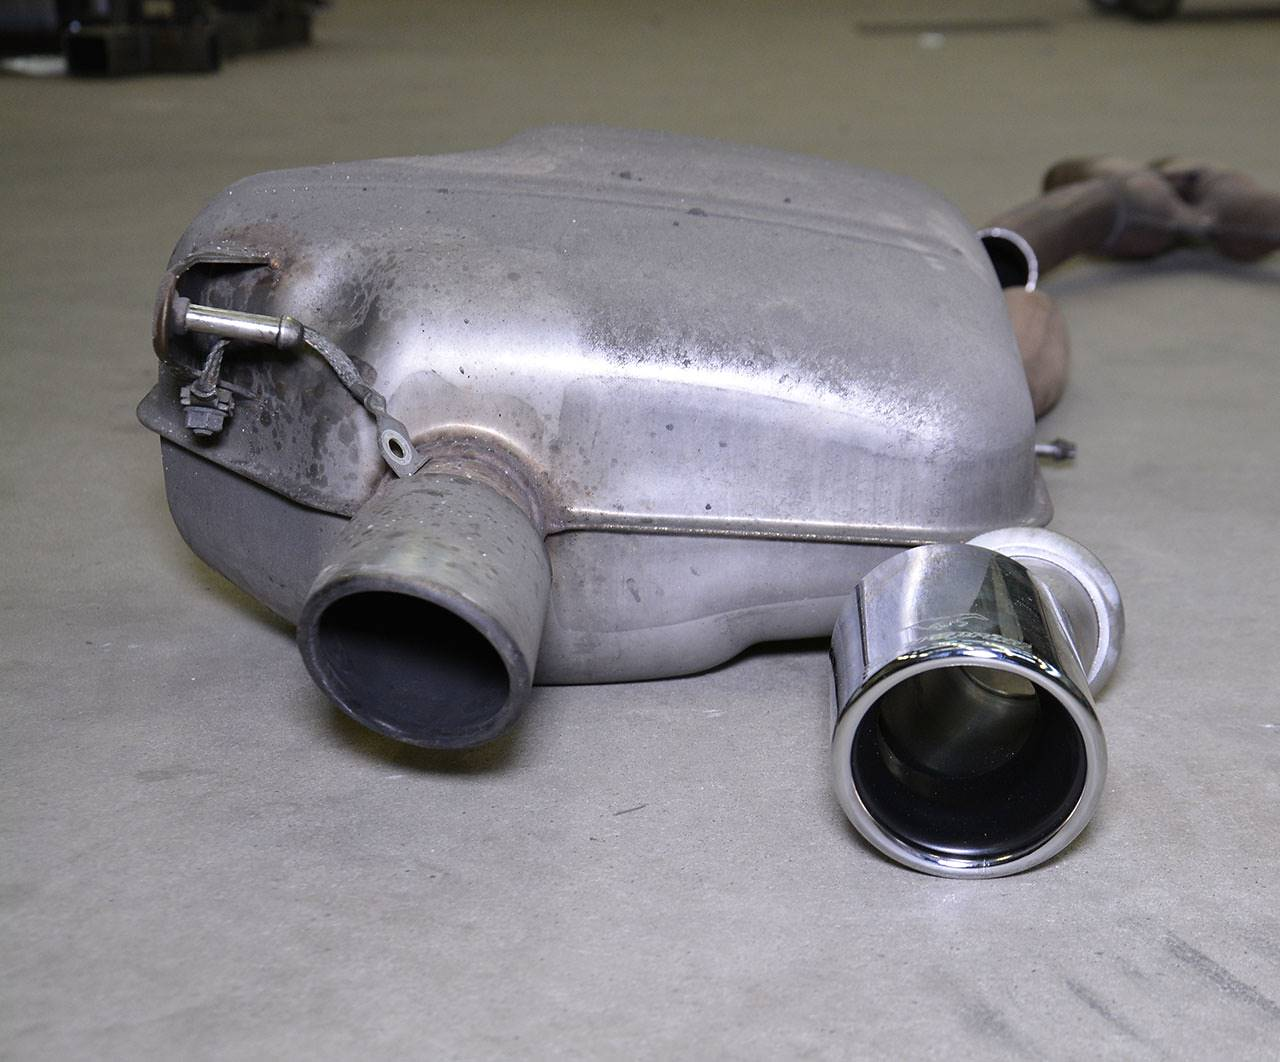 Stock tail pipe VS Supersprint tailpipe